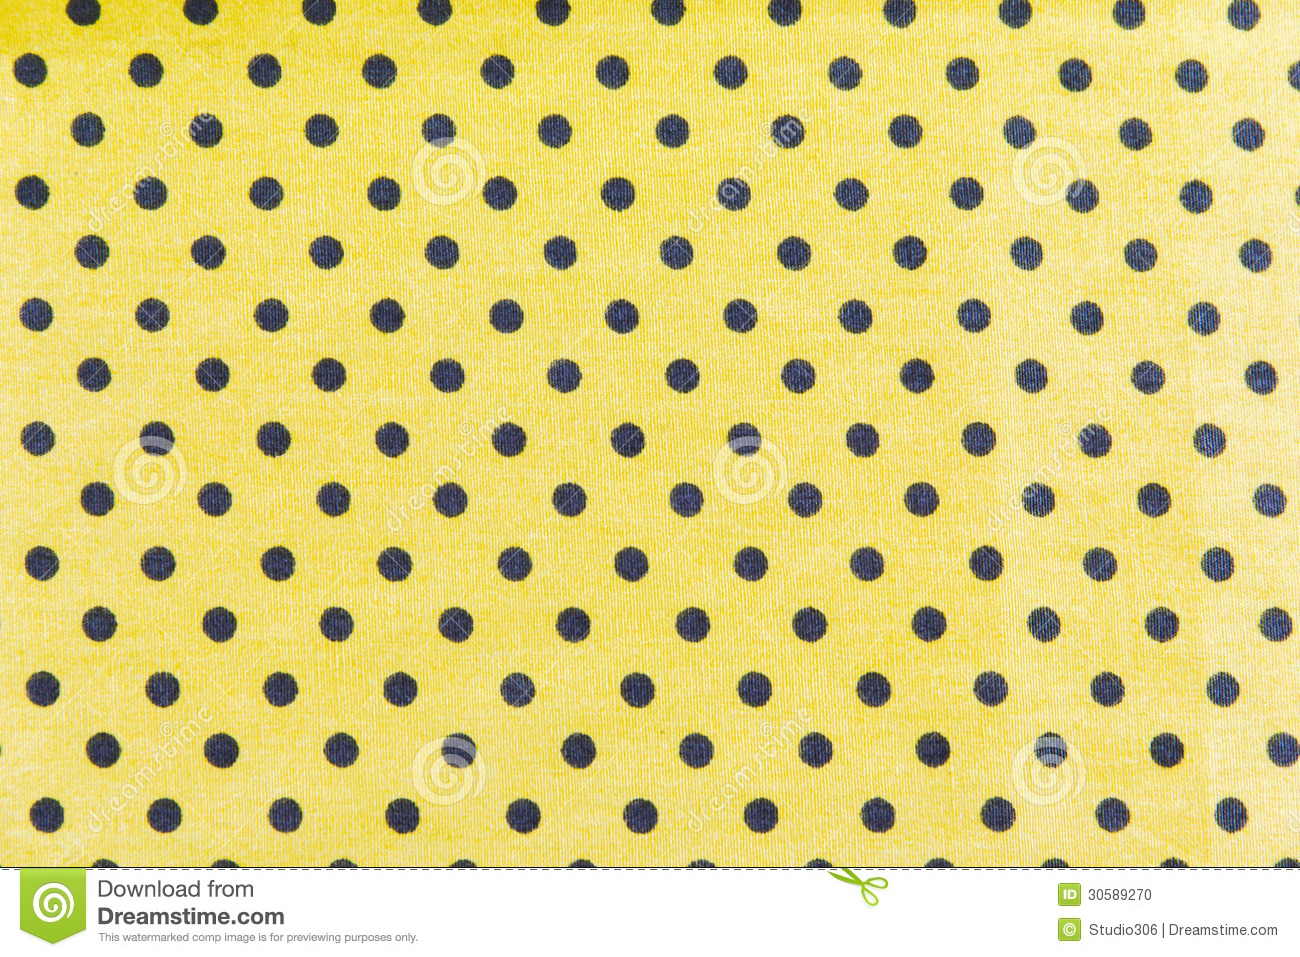 Black Dots On Yellow Background Stock Photo - Image of circles ...